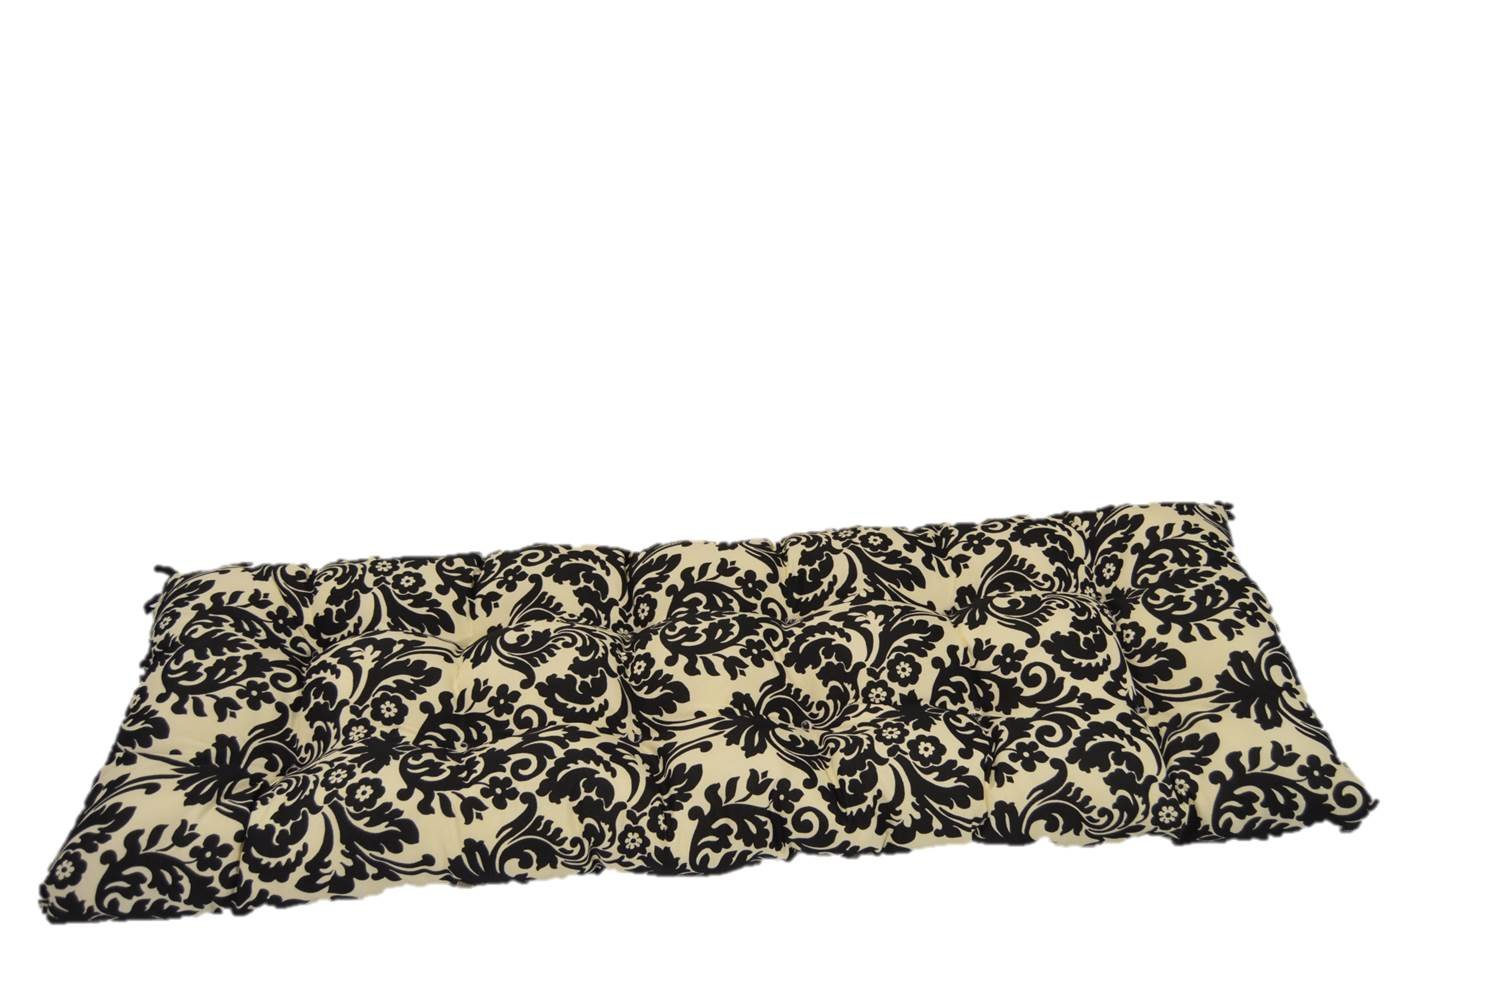 Black & Ivory Damask Scroll Tufted Cushion for Bench, Swing, or Glider - Choose Size (38'' x 18'')